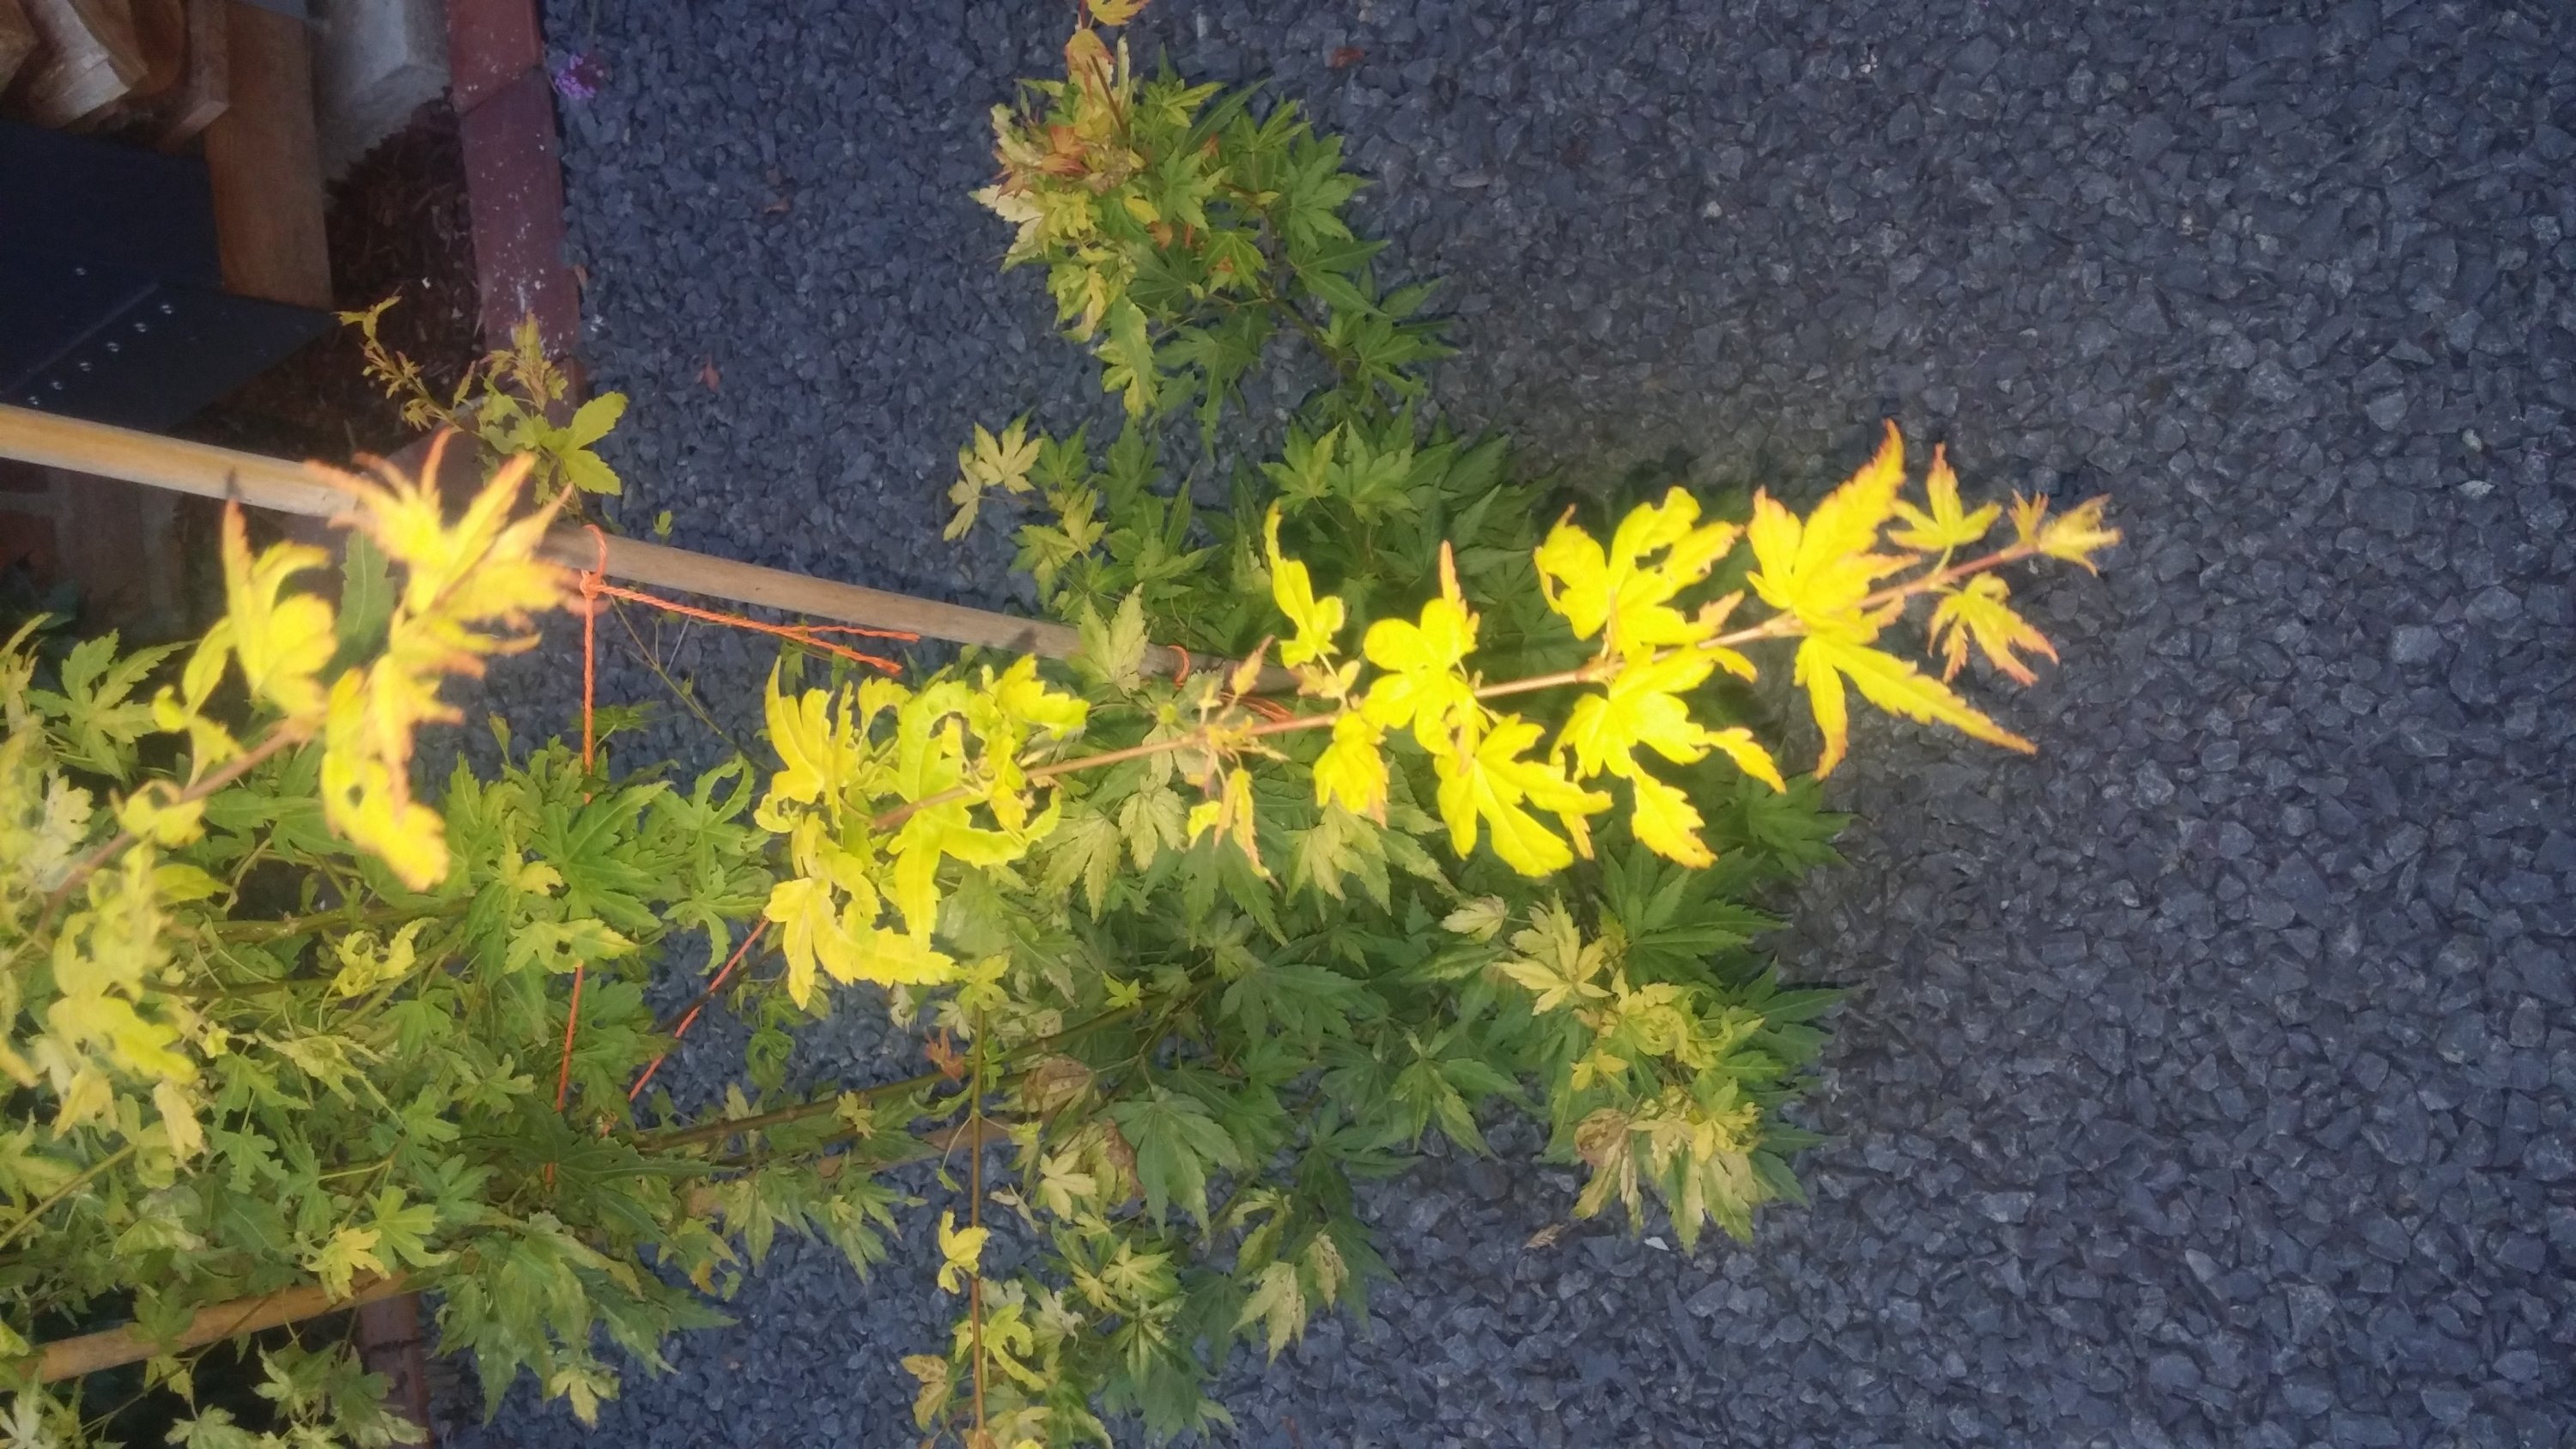 Acer palmatum Orange Dream Blätter problem-20170727_212739.jpg